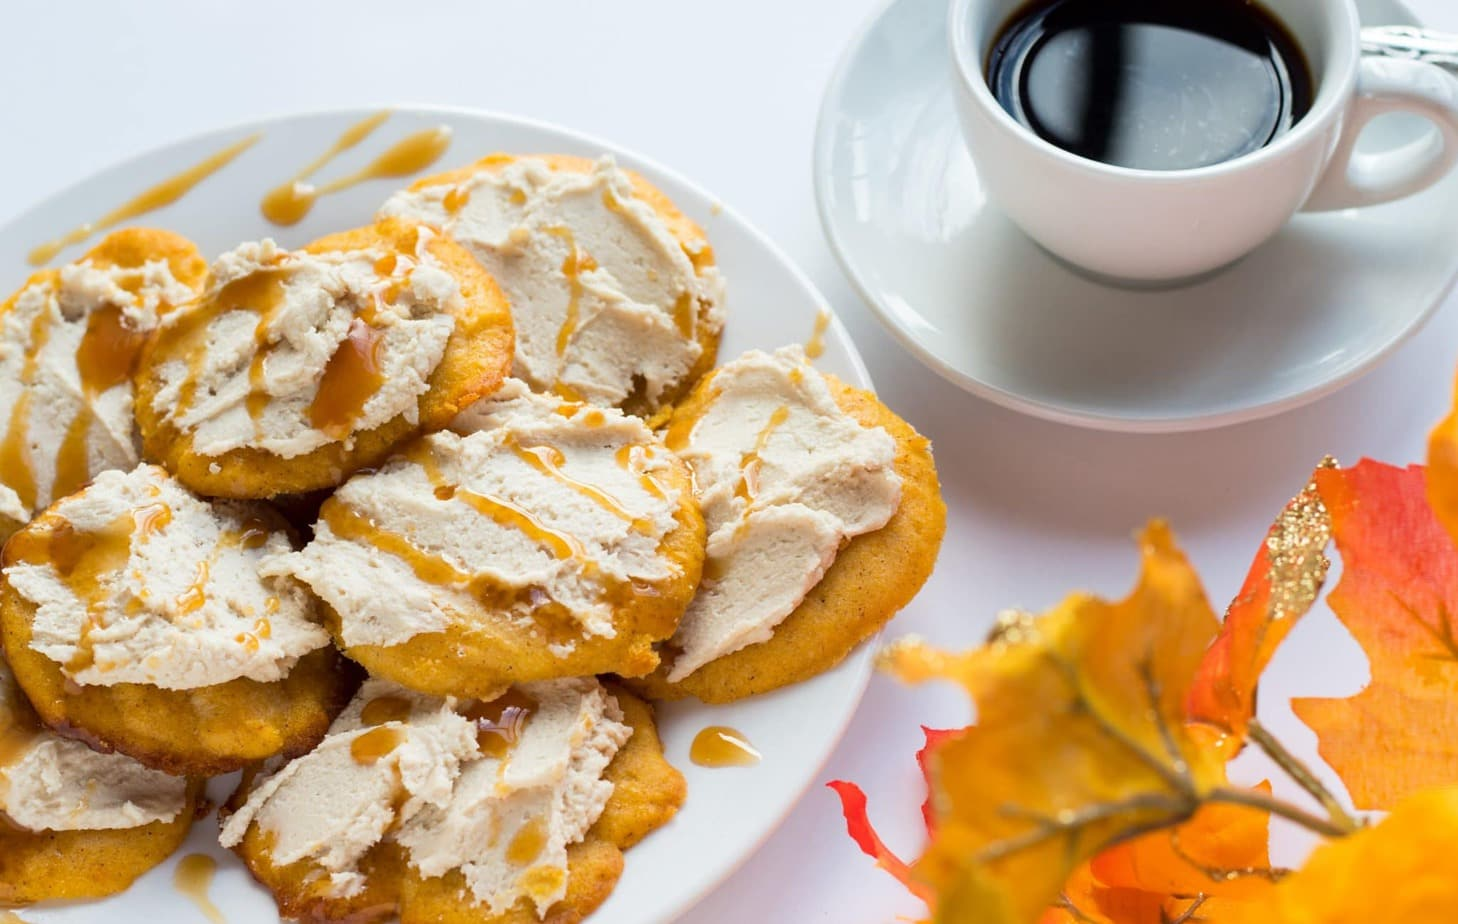 Spiced Pumpkin Ricotta Cookies with Caramel Icing